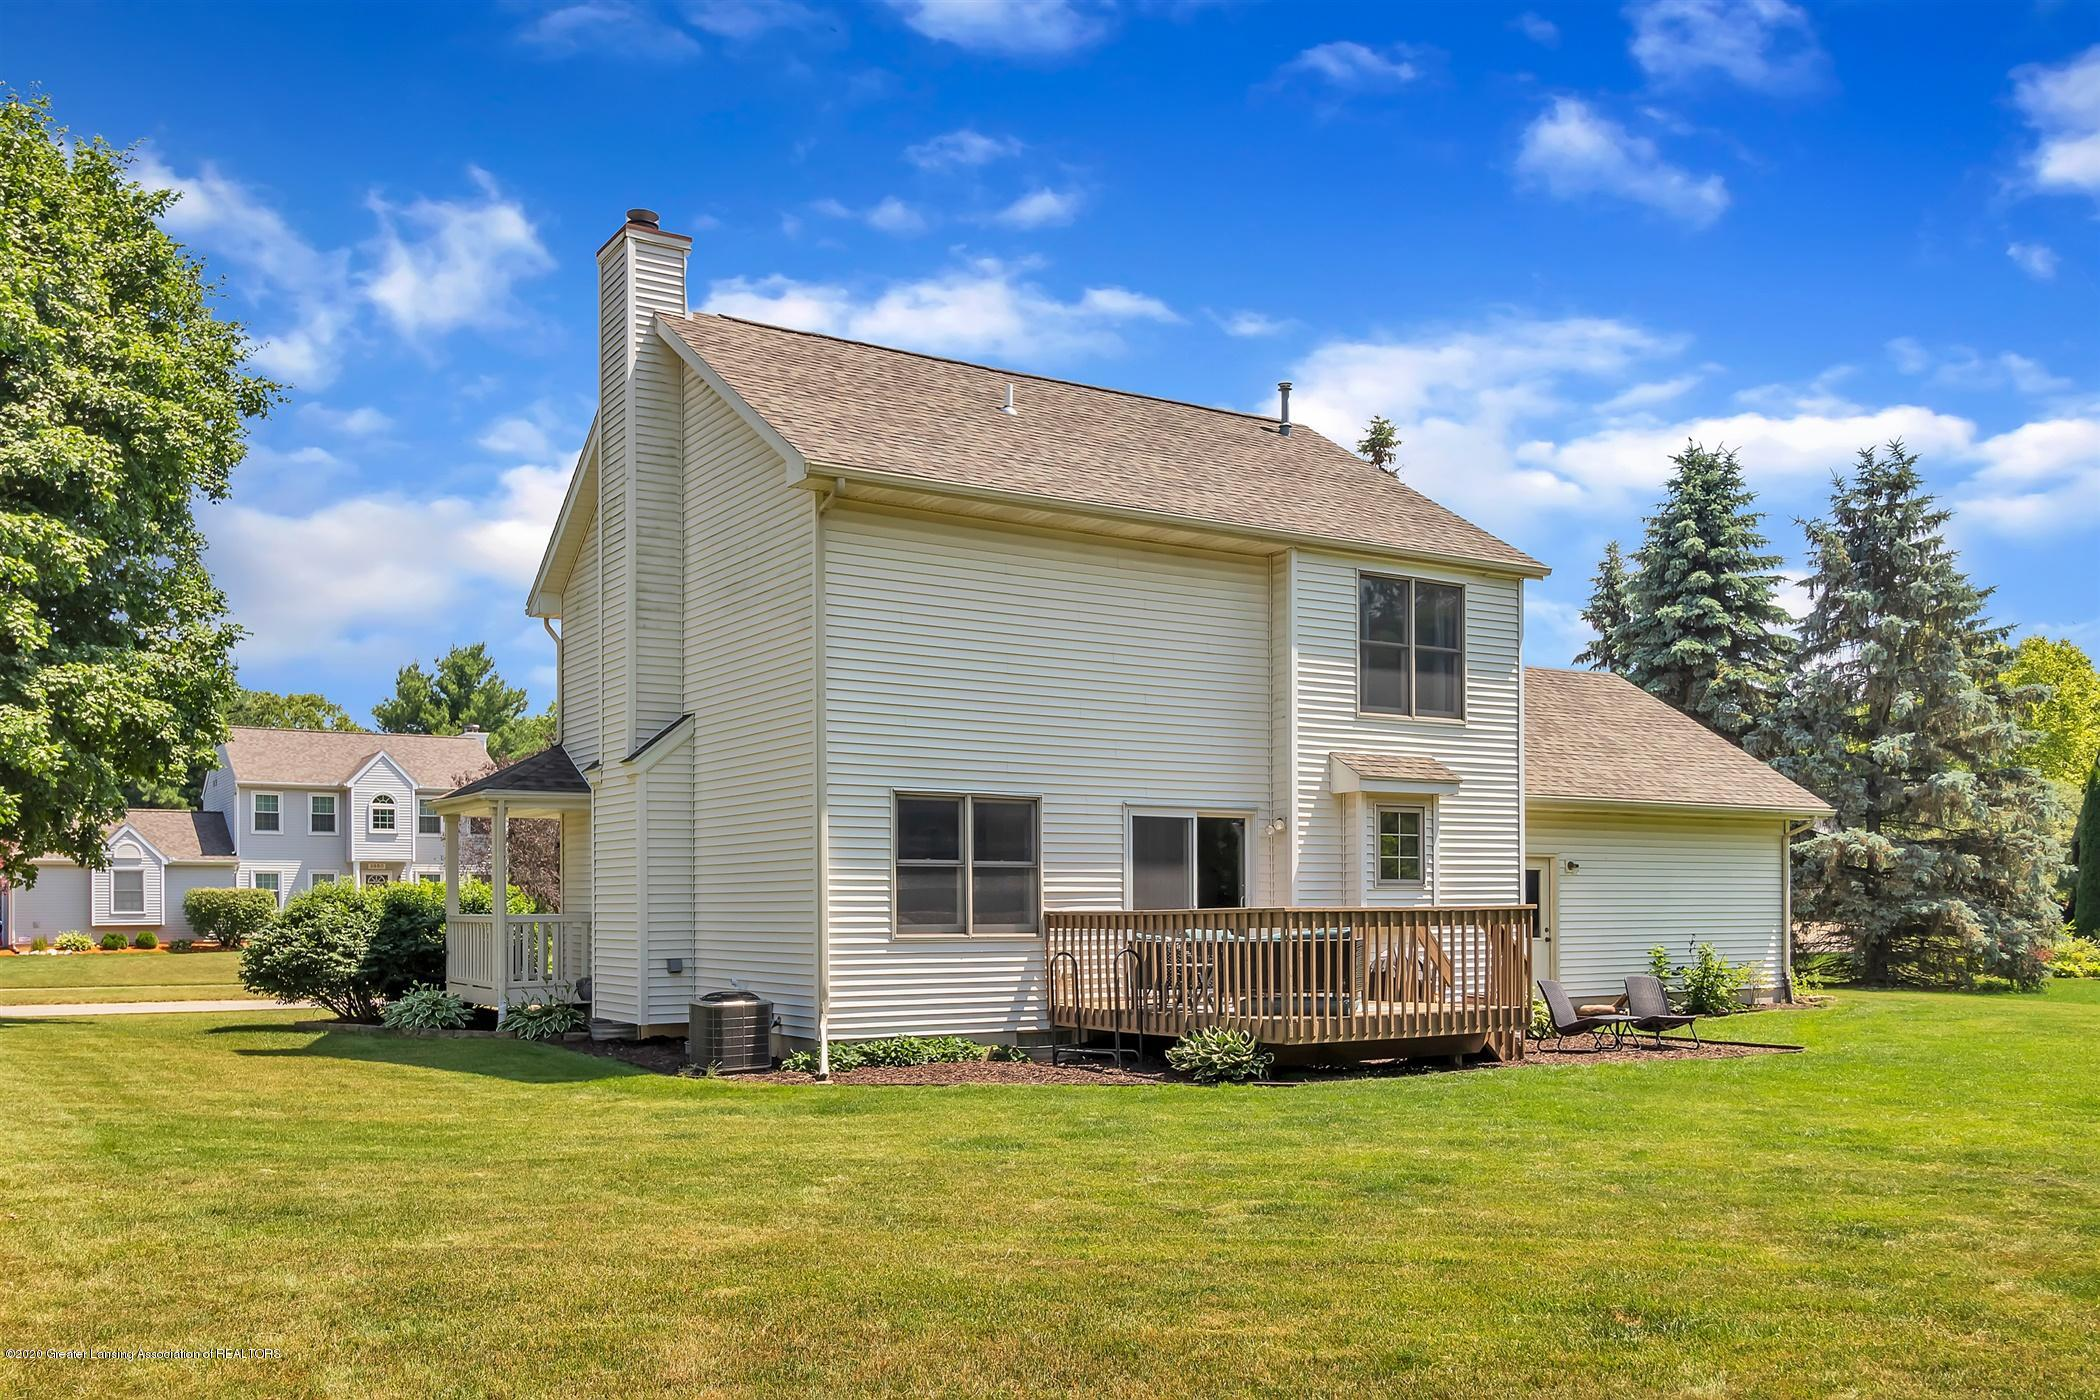 2945 Whistlewood Way - 36-2945Whistlewood-WindowStill-Real - 36